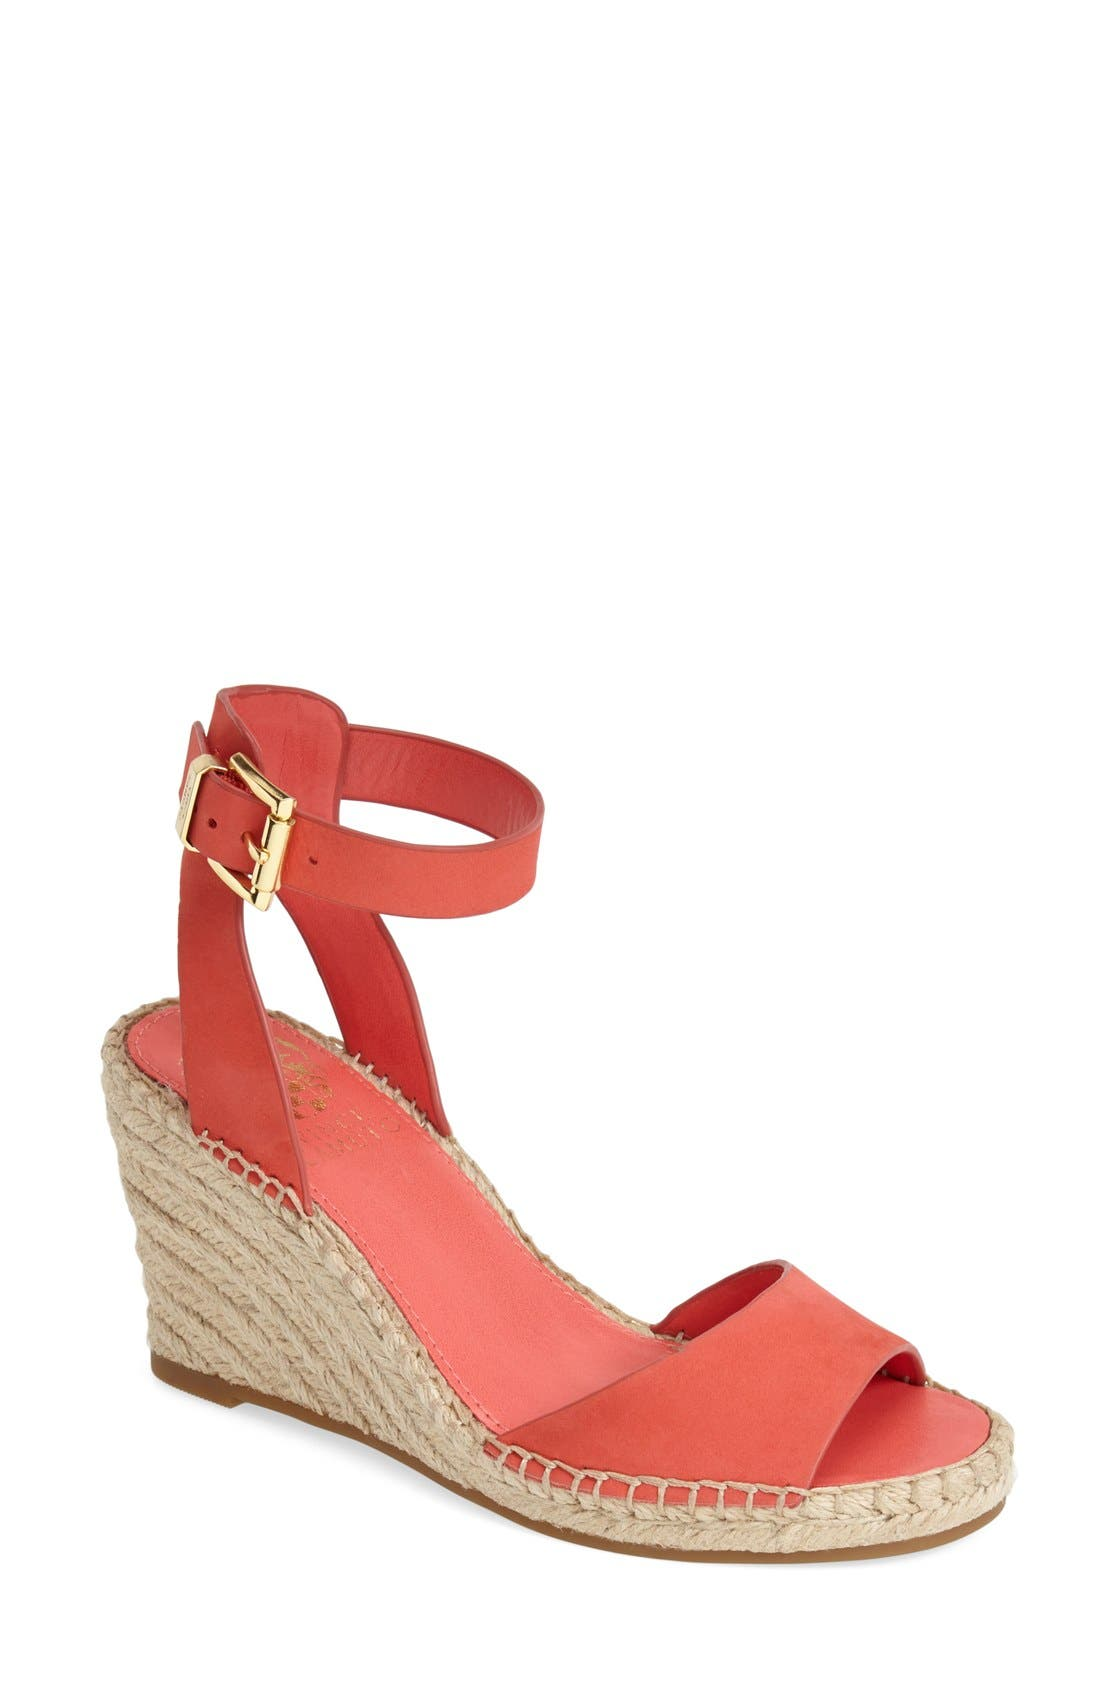 Alternate Image 1 Selected - Vince Camuto 'Tagger' Espadrille Wedge Sandal (Women)